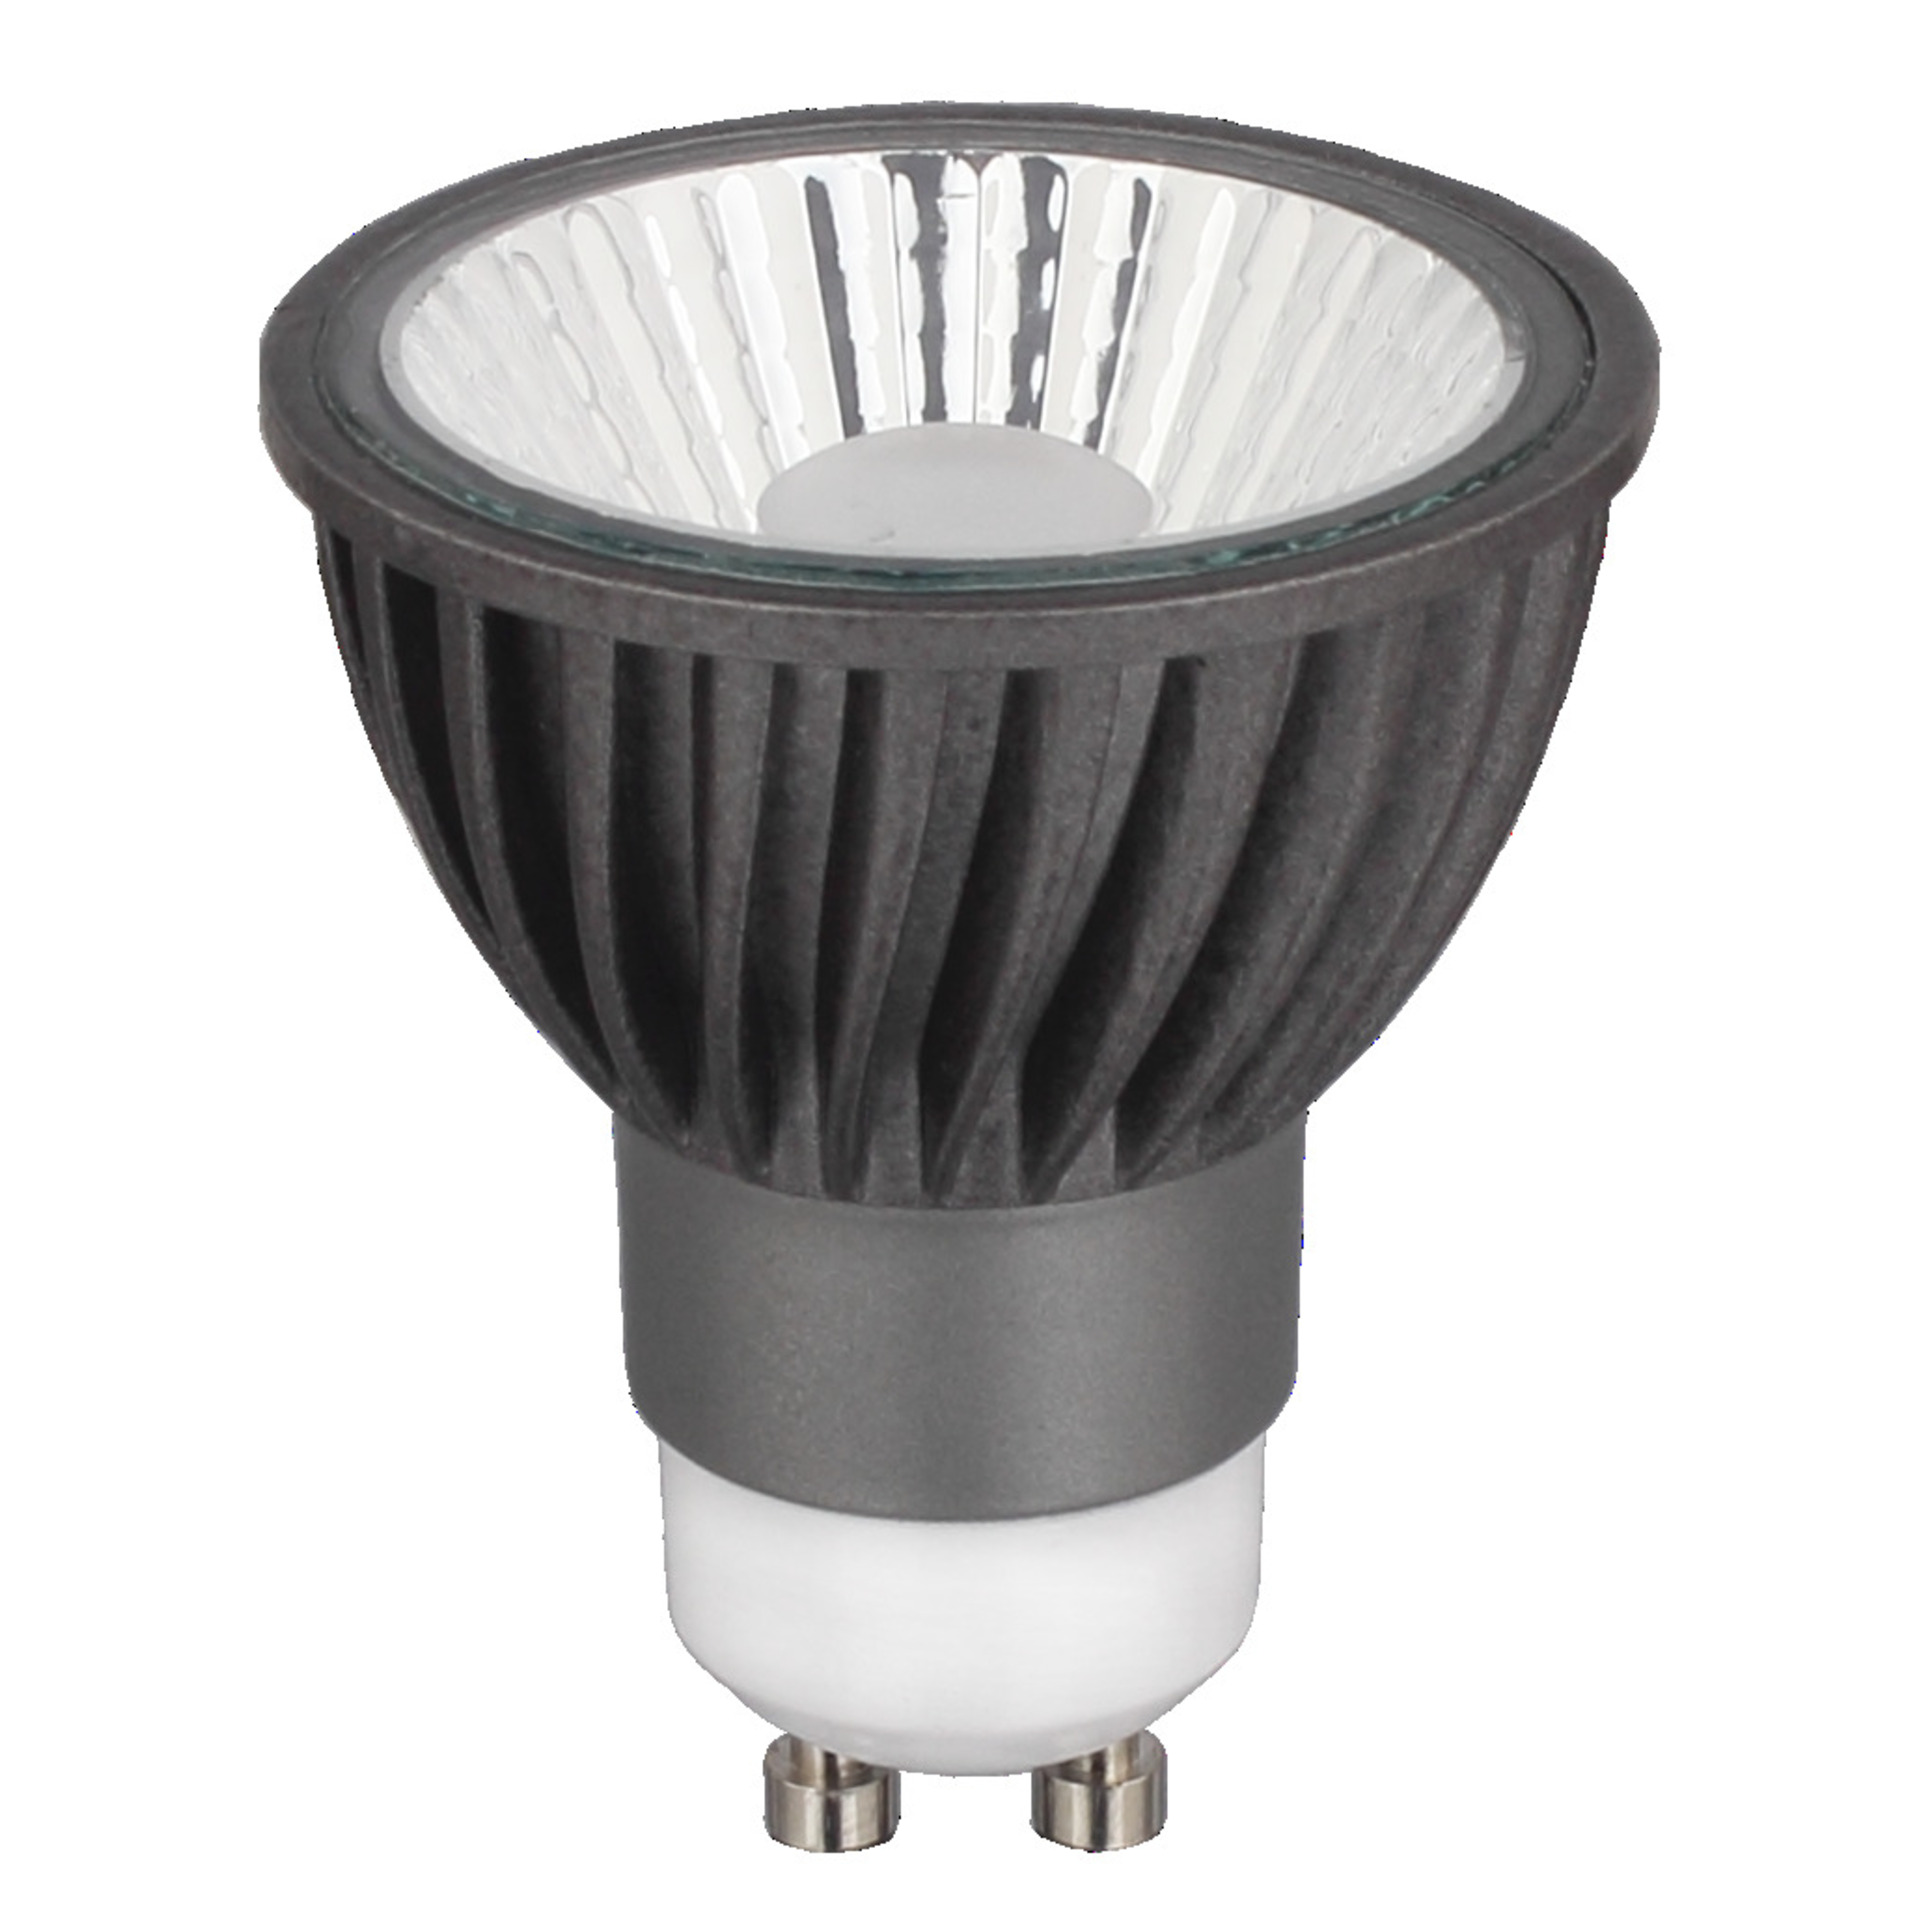 CV-Lighting HALED III 6-W-GU10-LED-Lampe- neutralweiss- dimmbar- 36-